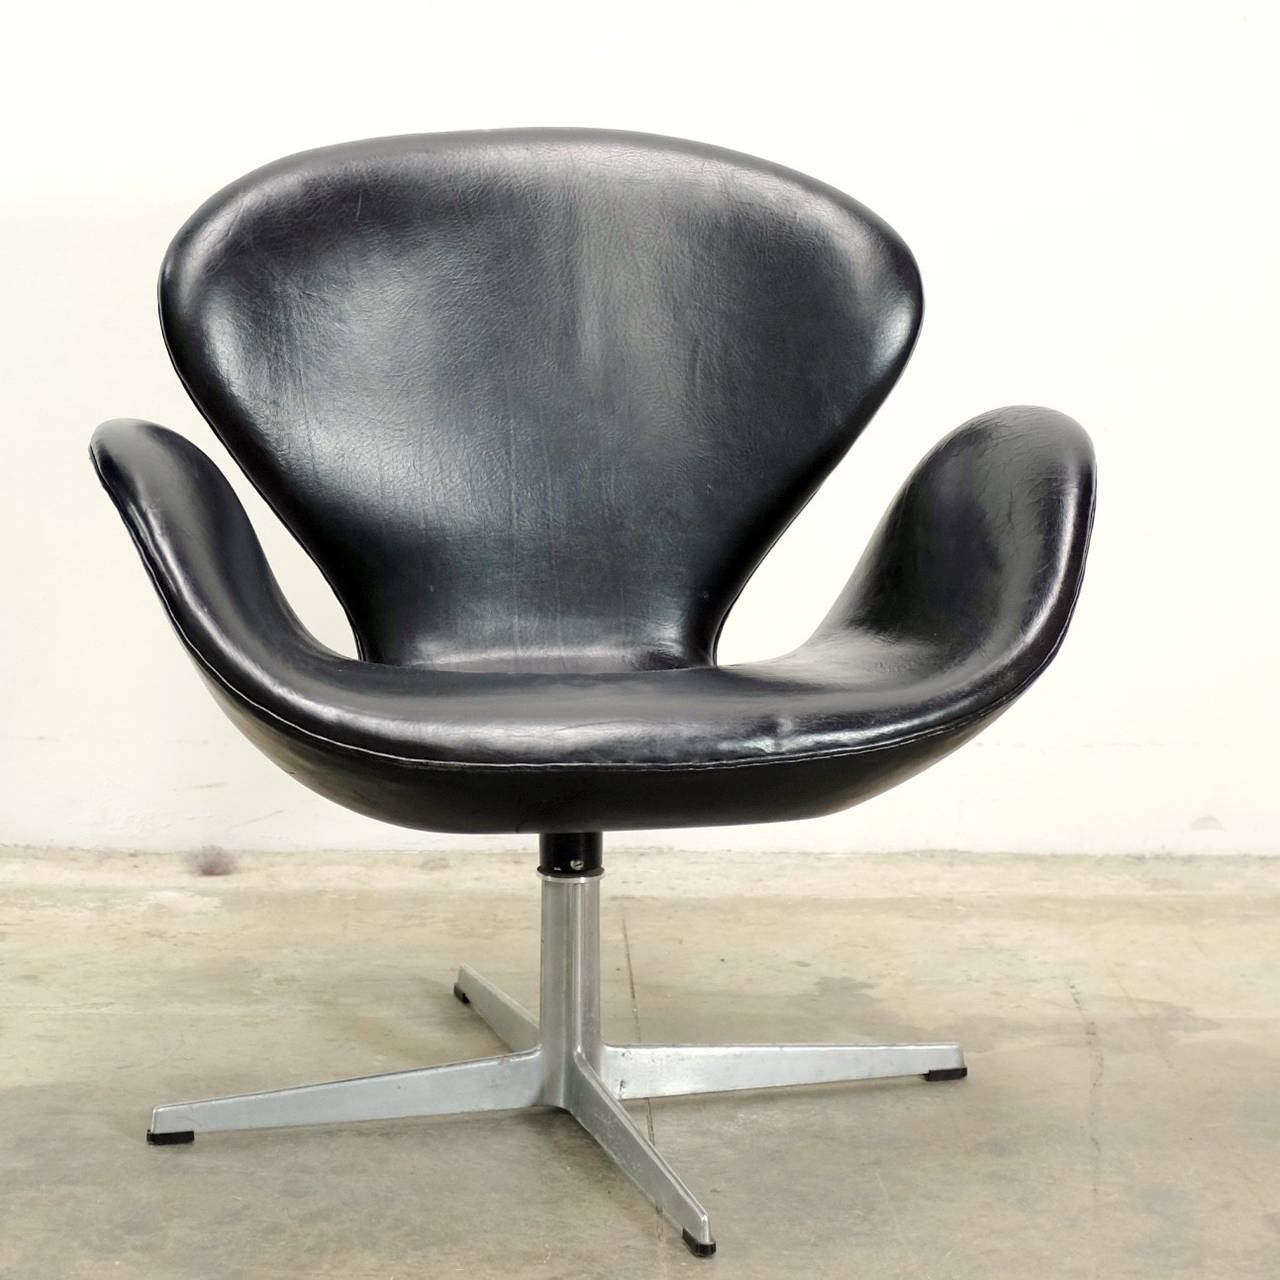 original arne jacobsen swan chair in black leather at 1stdibs. Black Bedroom Furniture Sets. Home Design Ideas